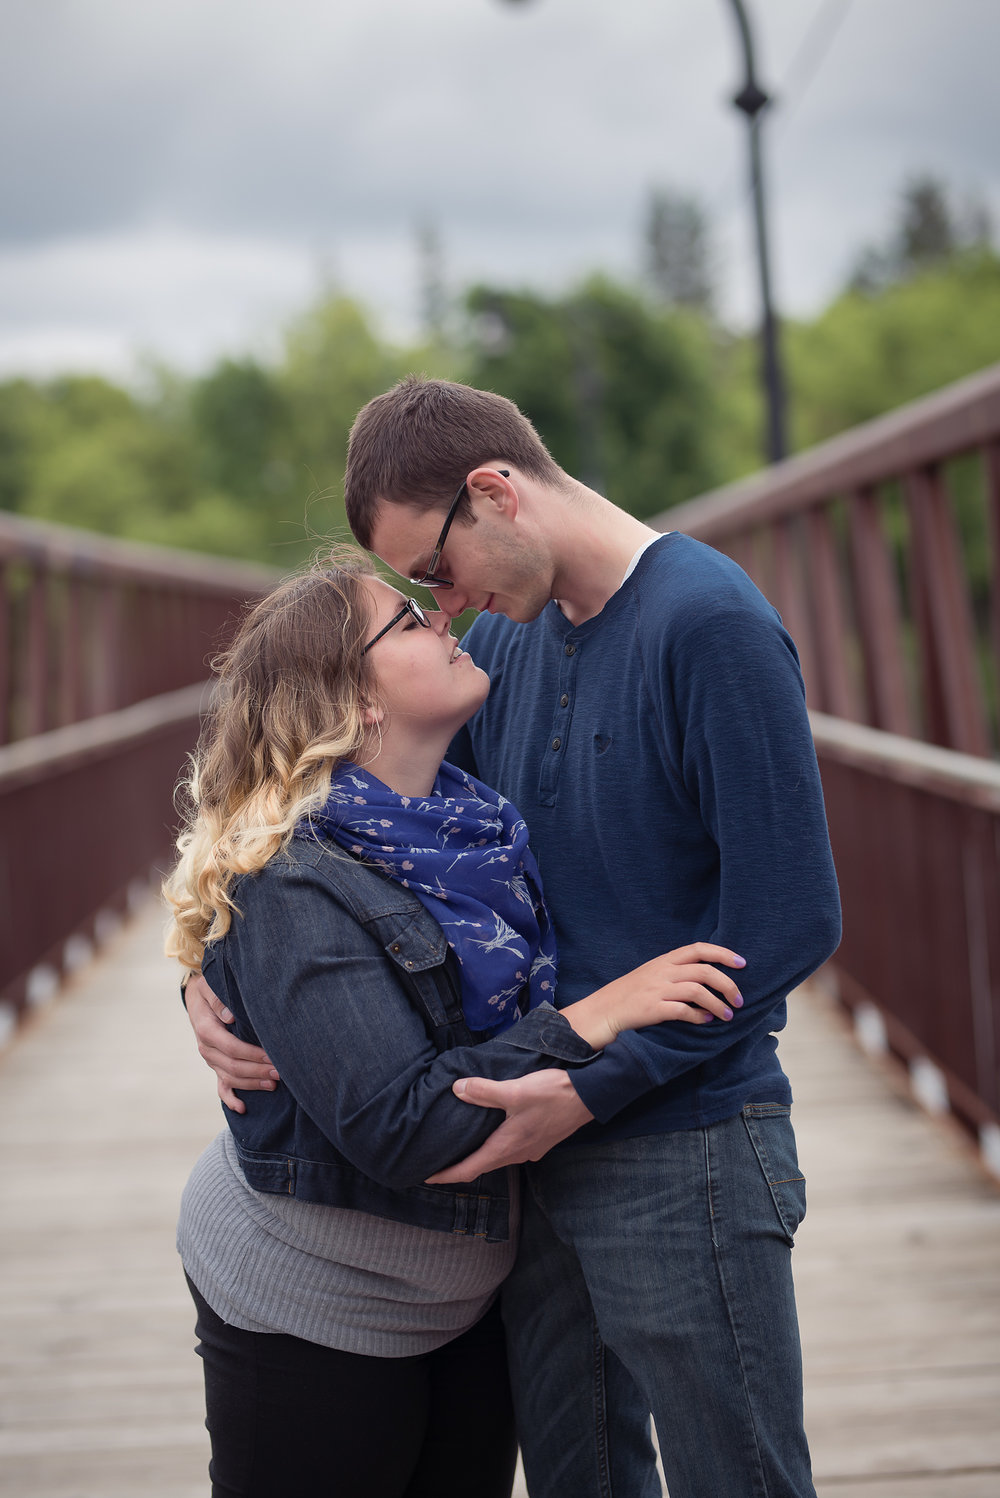 Couples73NaomiLuciennePhotography062018-2-Edit.jpg